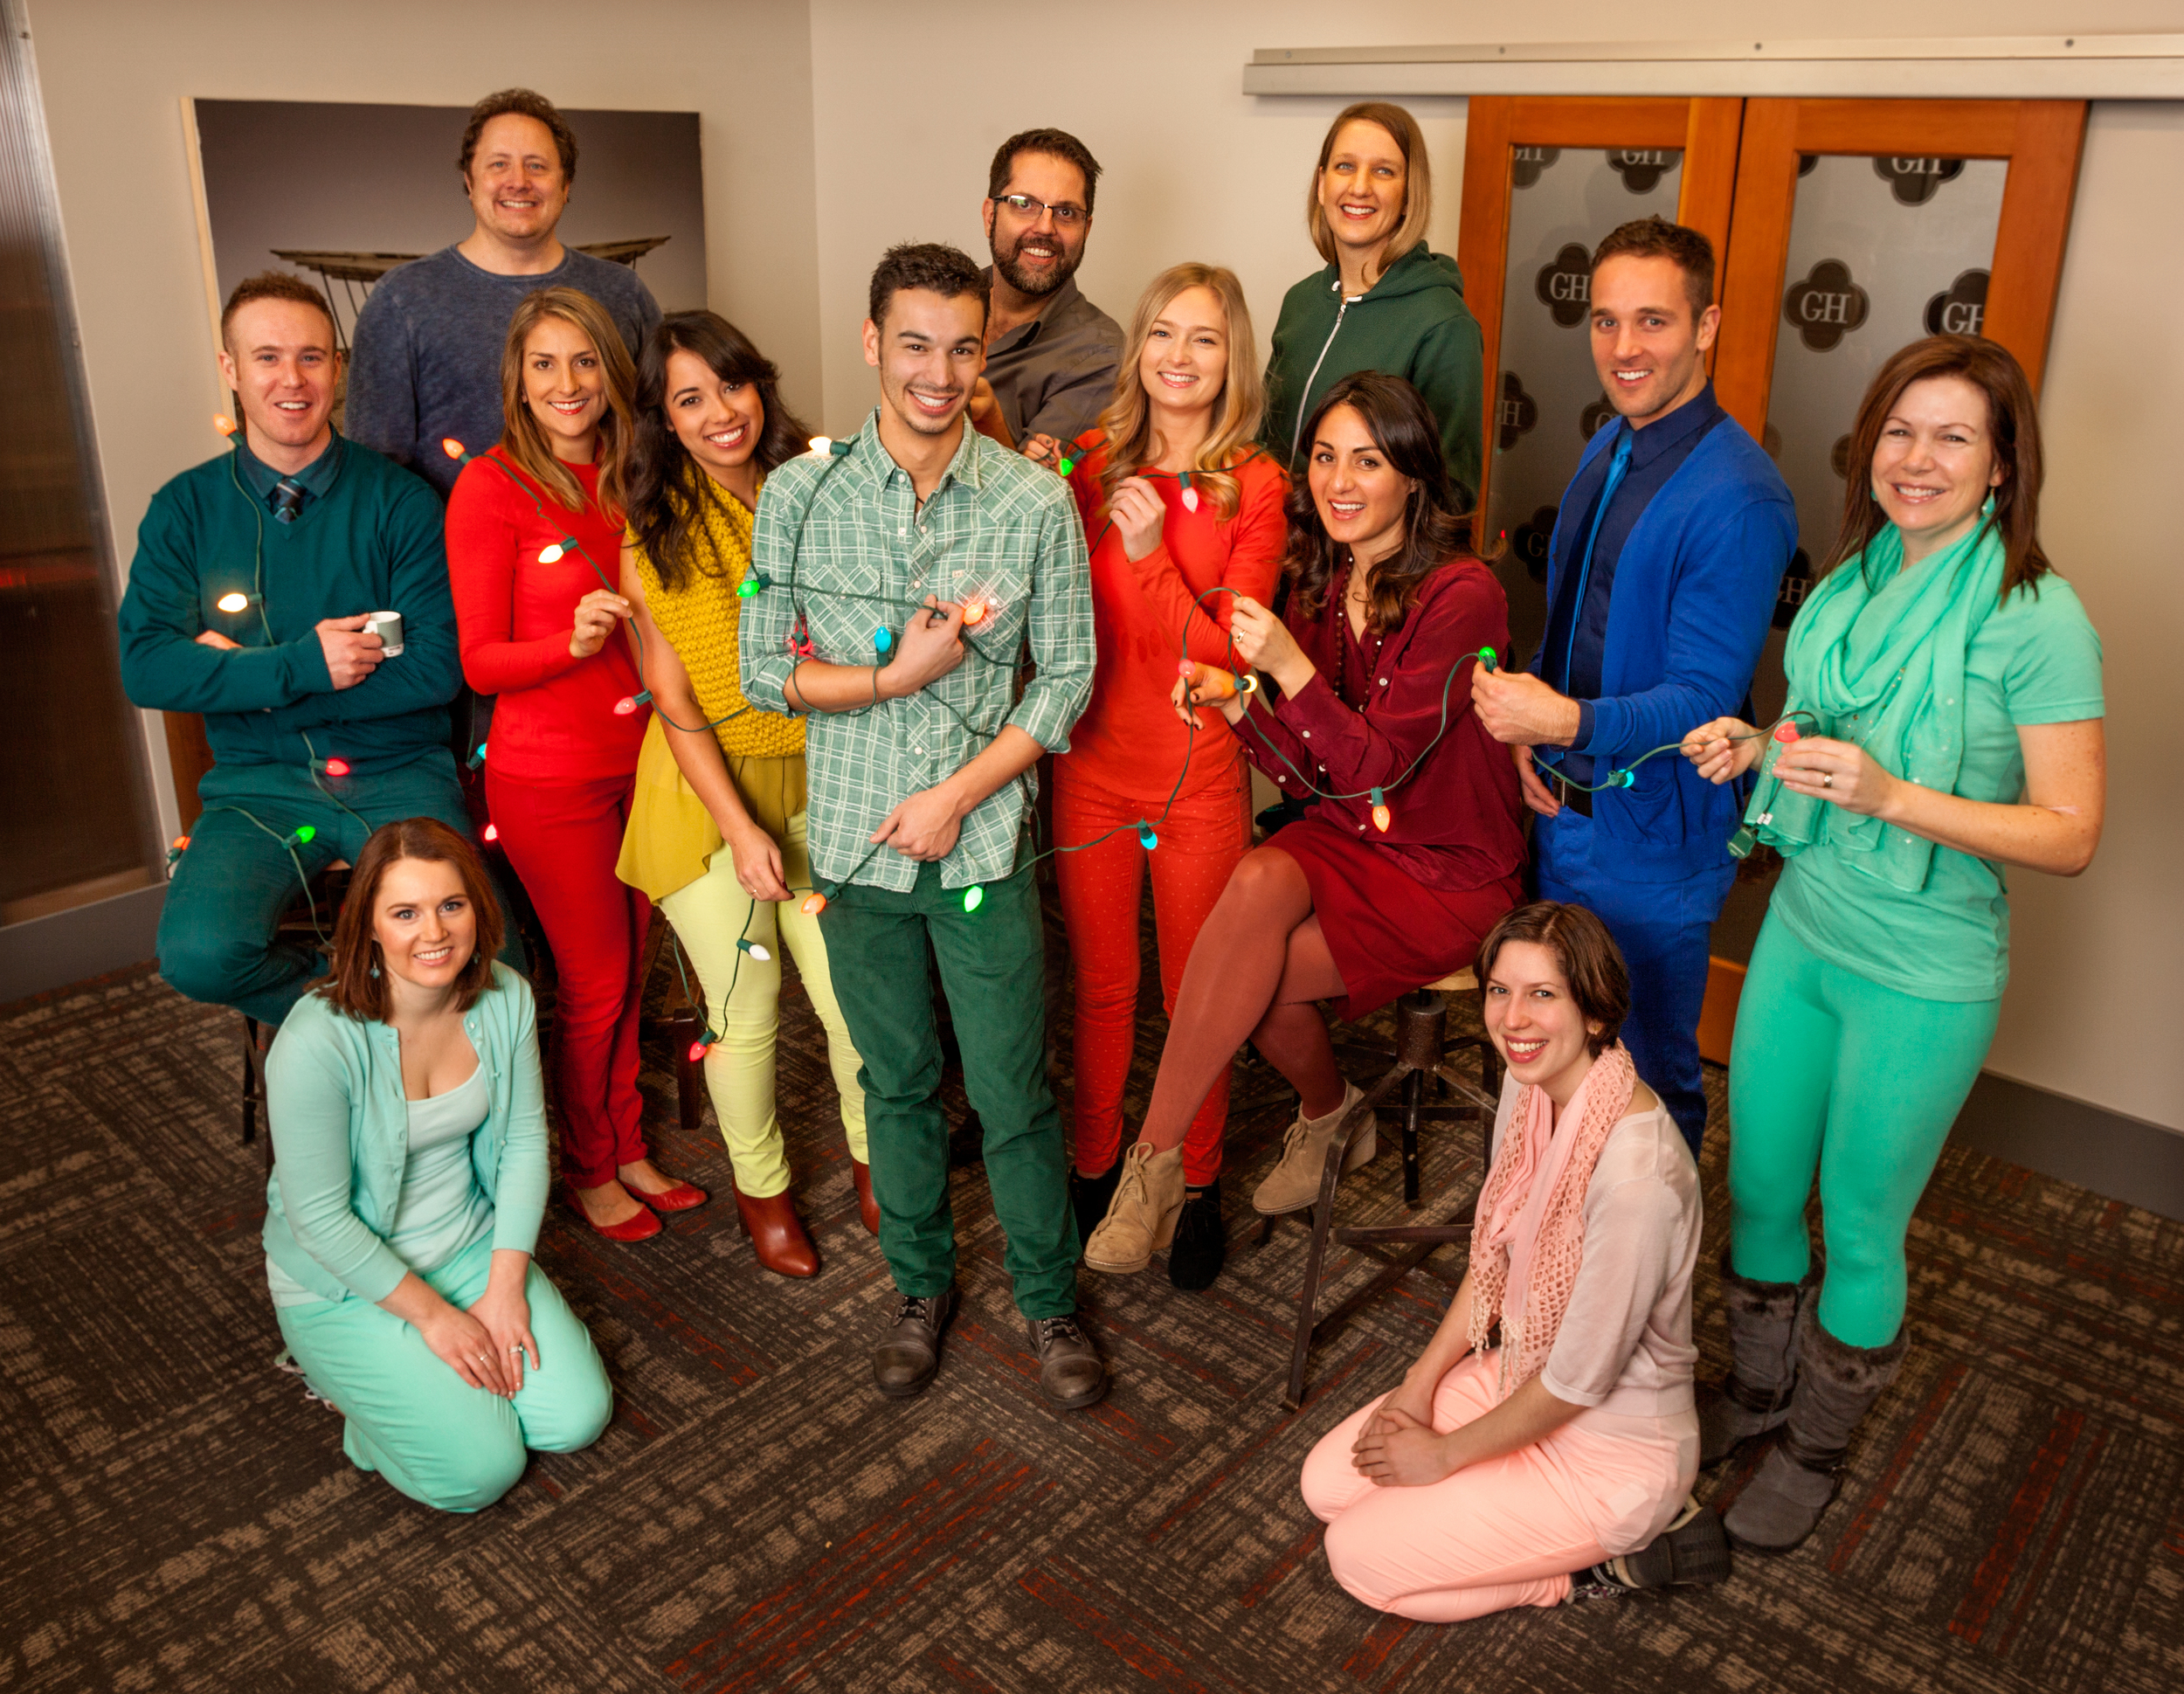 Garrison Hullinger Interior Design Dresses Up Like Pantone Colors For Holiday Photo